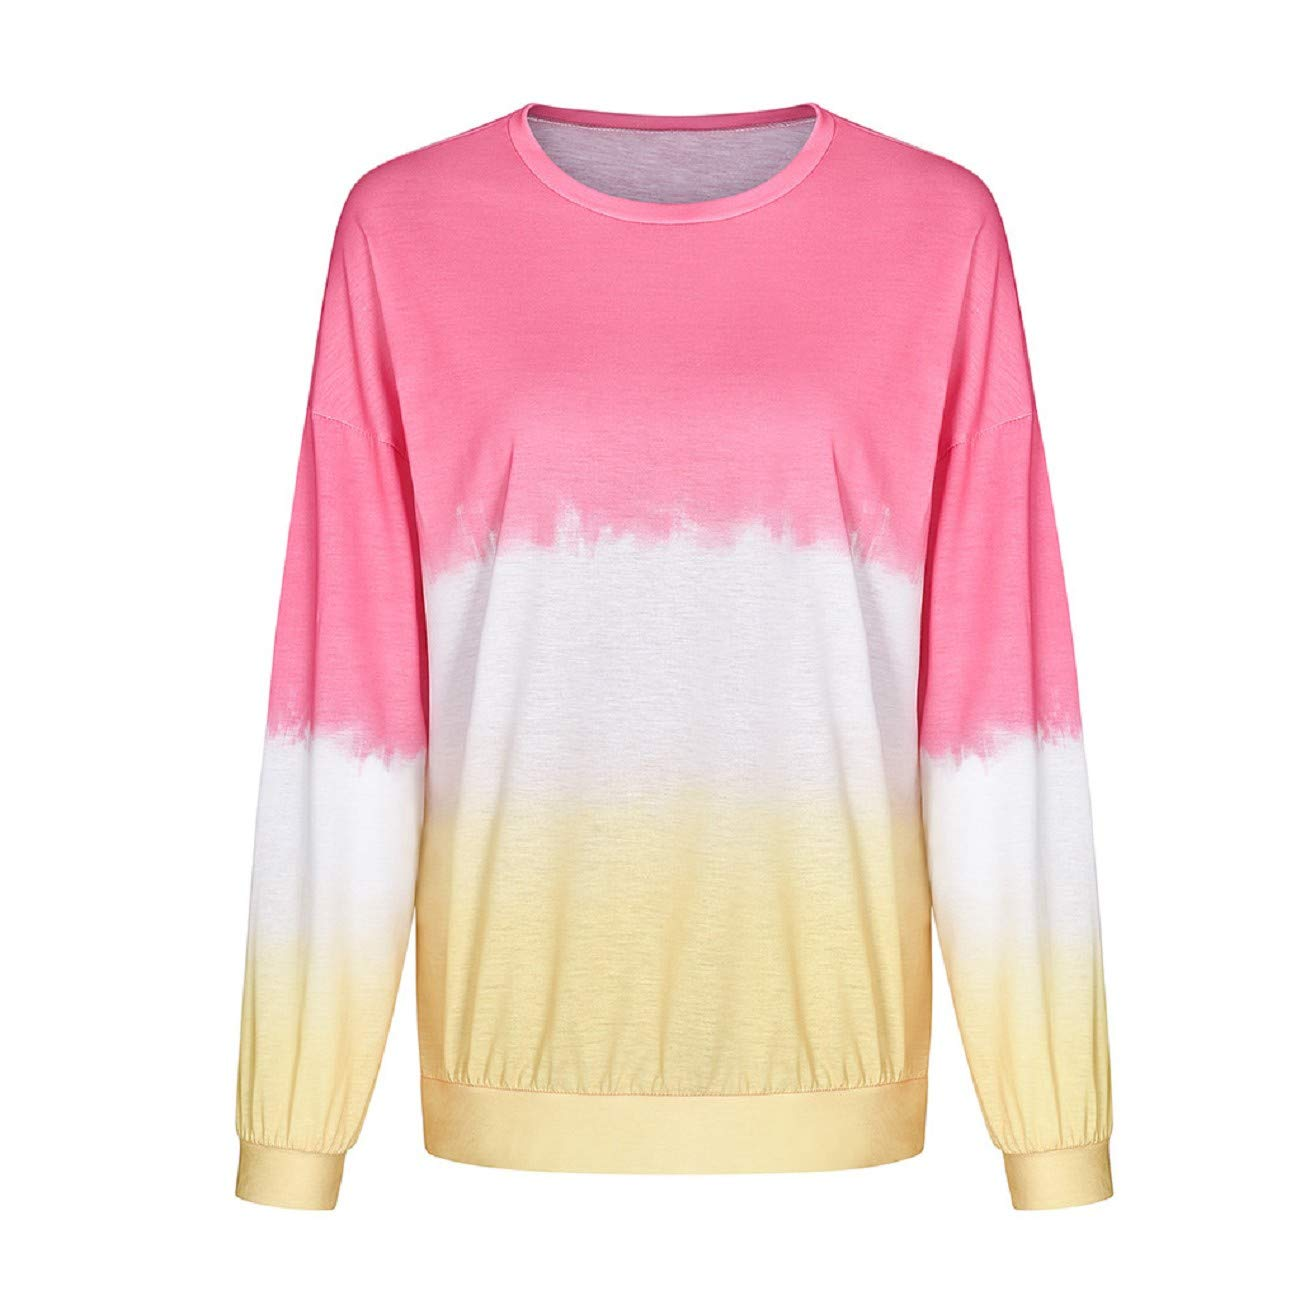 Tsmile Women Gradient Color Shirt Casual Round Neck Contrast Color Long Sleeve Fall Trendy Tops Pullover Sweatshirt